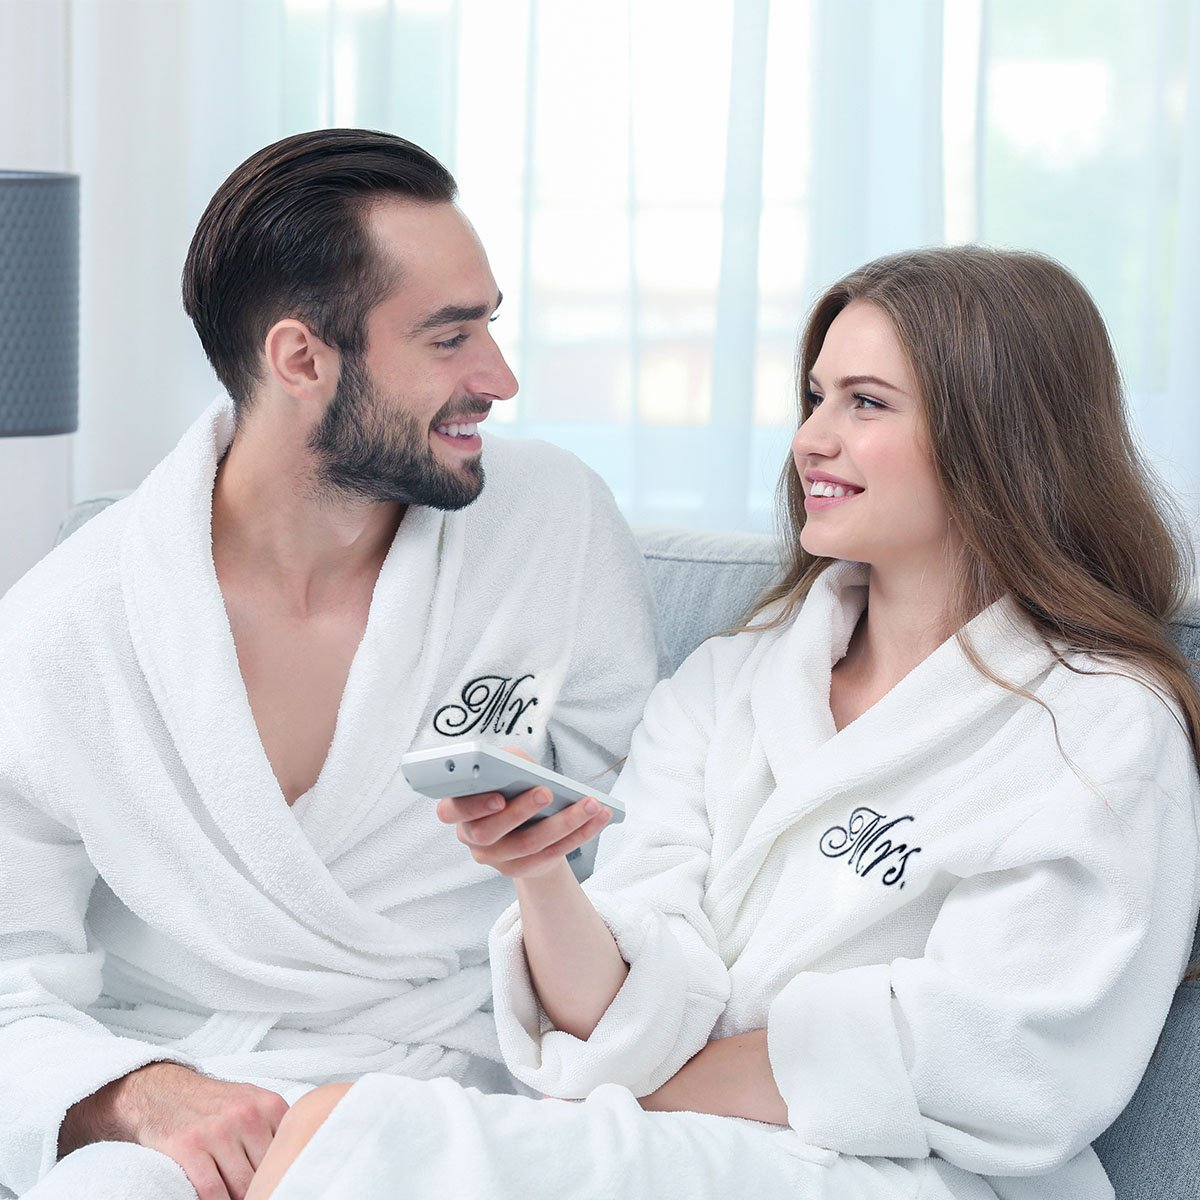 Luxor Linens - Terry Cloth Bathrobes - 100% Egyptian Cotton Mr.& Mrs. Bathrobe Set - Luxurious, Soft, Plush Durable Set of Robes by Luxor Linens (Image #4)